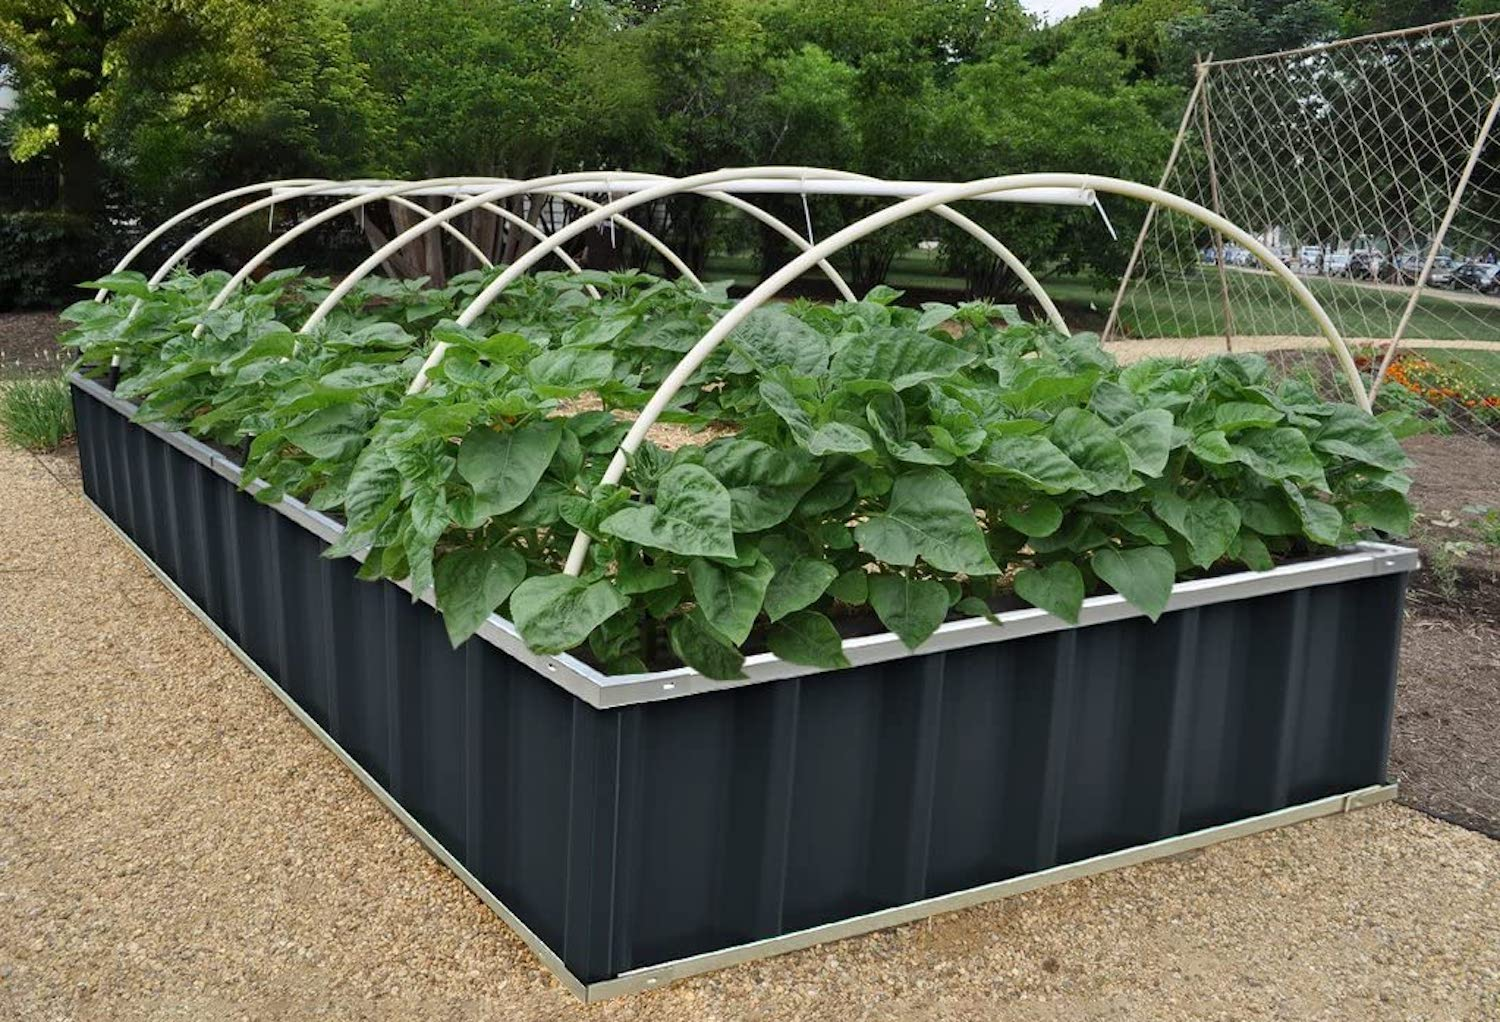 A raised garden bed made of metal with green plants in it and arched rods over it